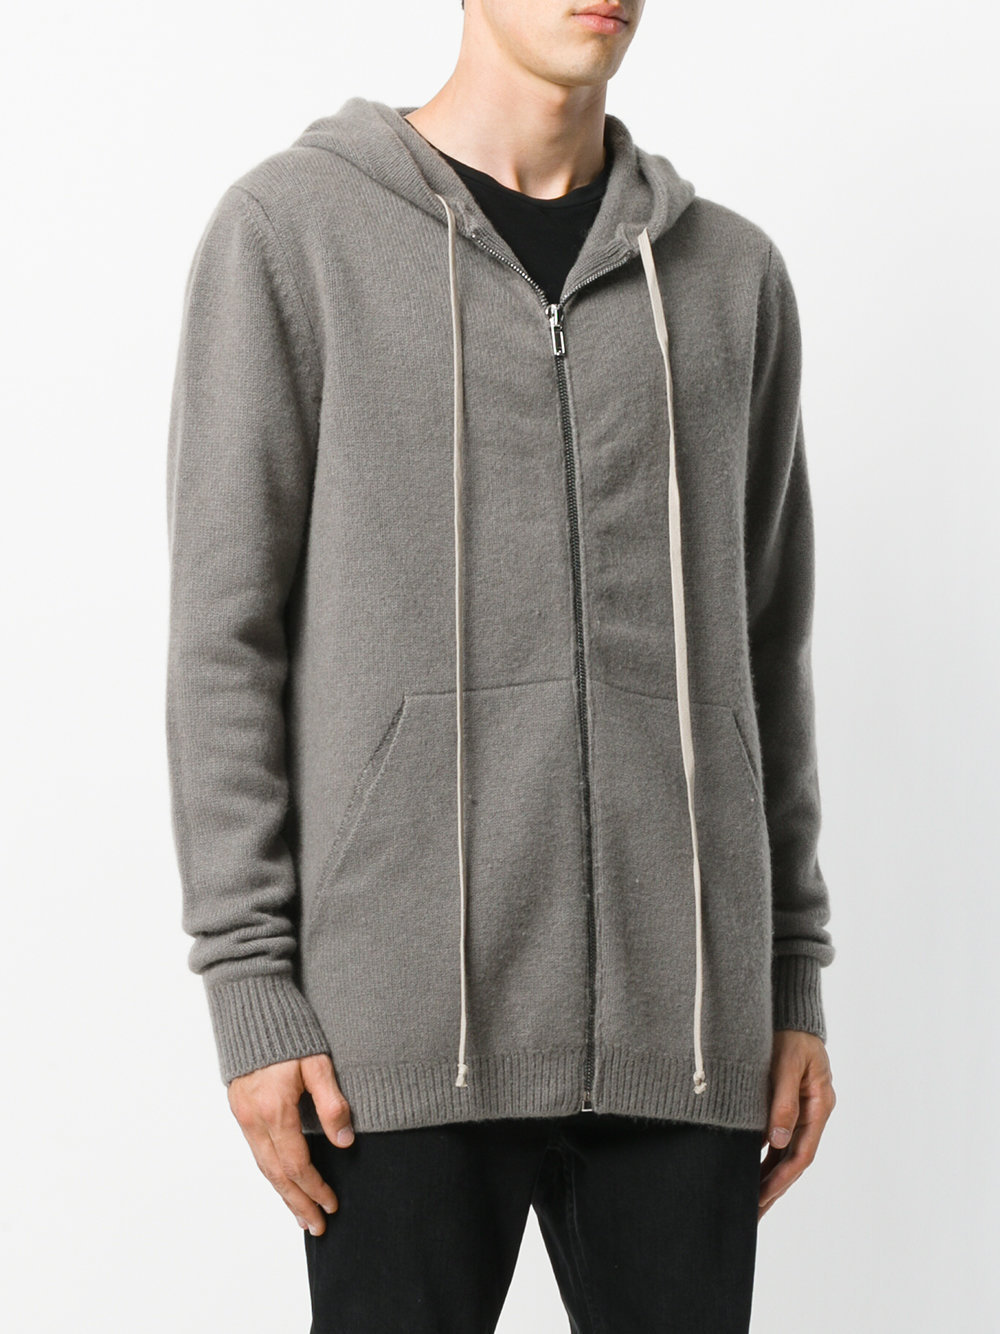 17-18AW RO150 BOILED CASHMERE ZIP HOODIE